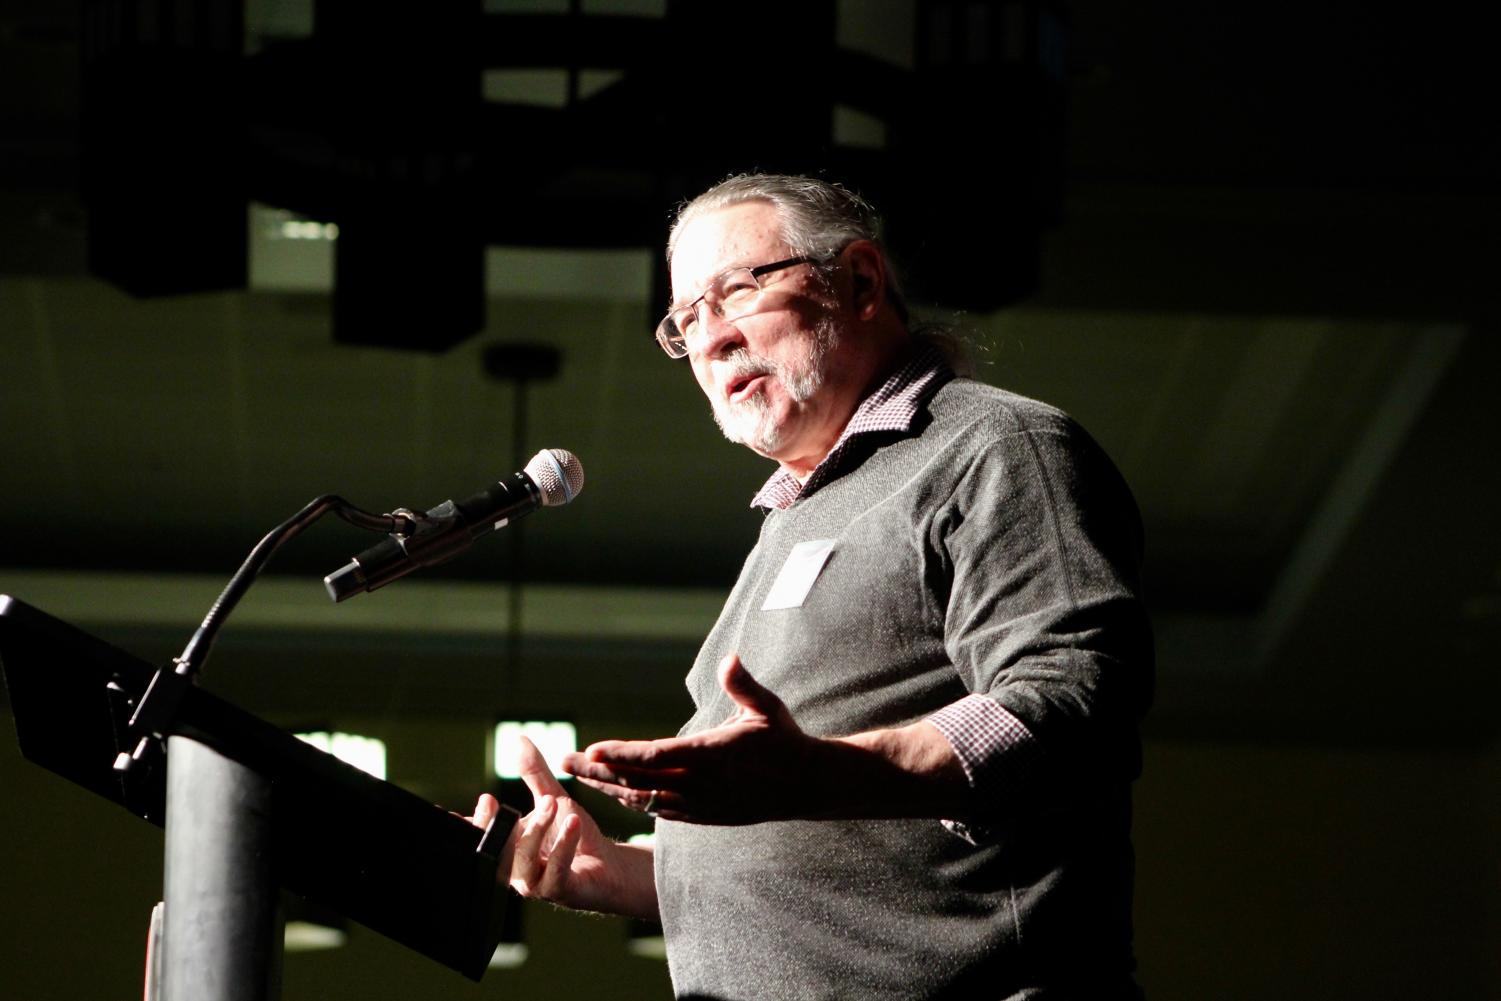 George Bellah, Associate Professor of theatre, presents a Distinguished Alumni Award at the CWU Alumni Banquet in the SURC Ballroom. The banquet included alumni as far back as 1968.